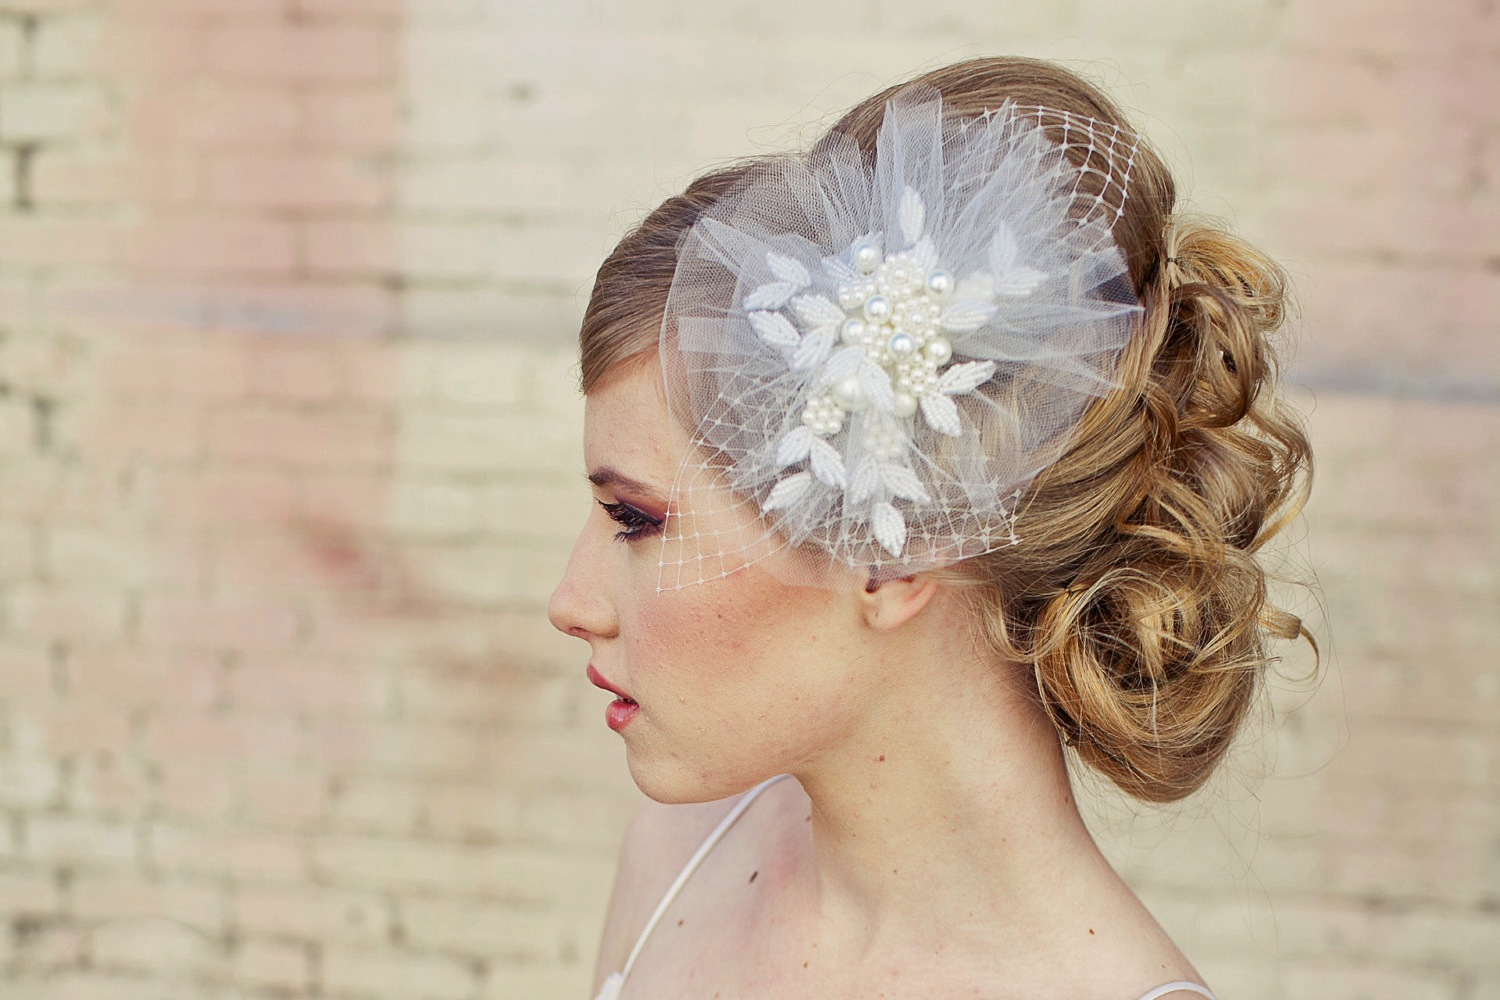 Romantic Bridal Veil Wedding Hair Accessories For Vintage Brides | OneWed.com